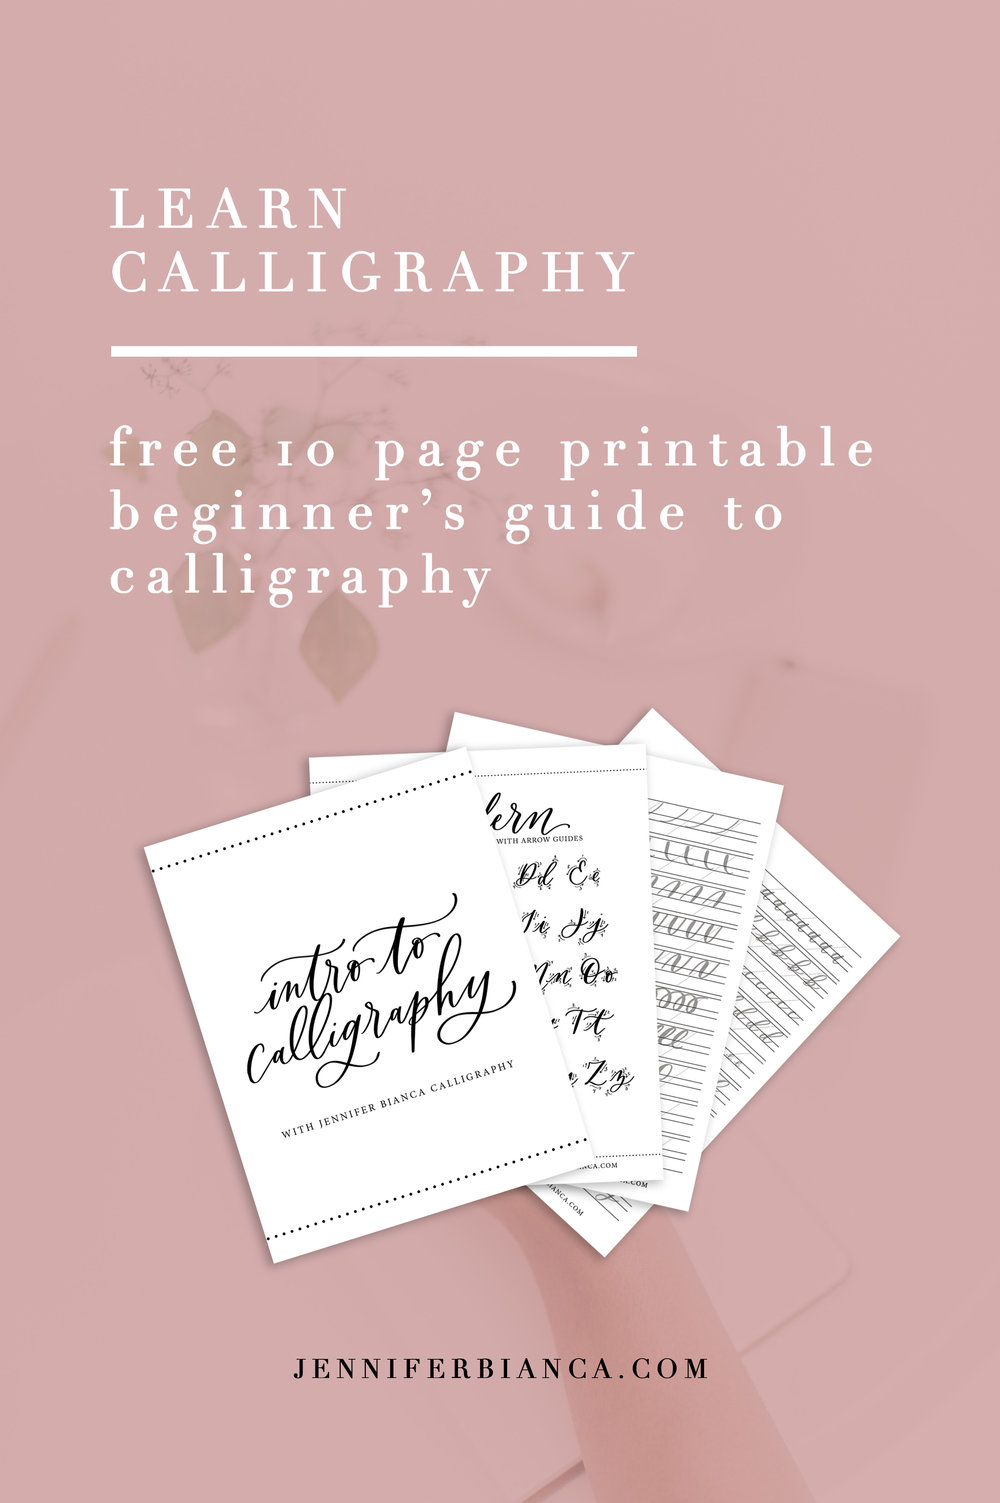 Calligraphy beginner's guide!